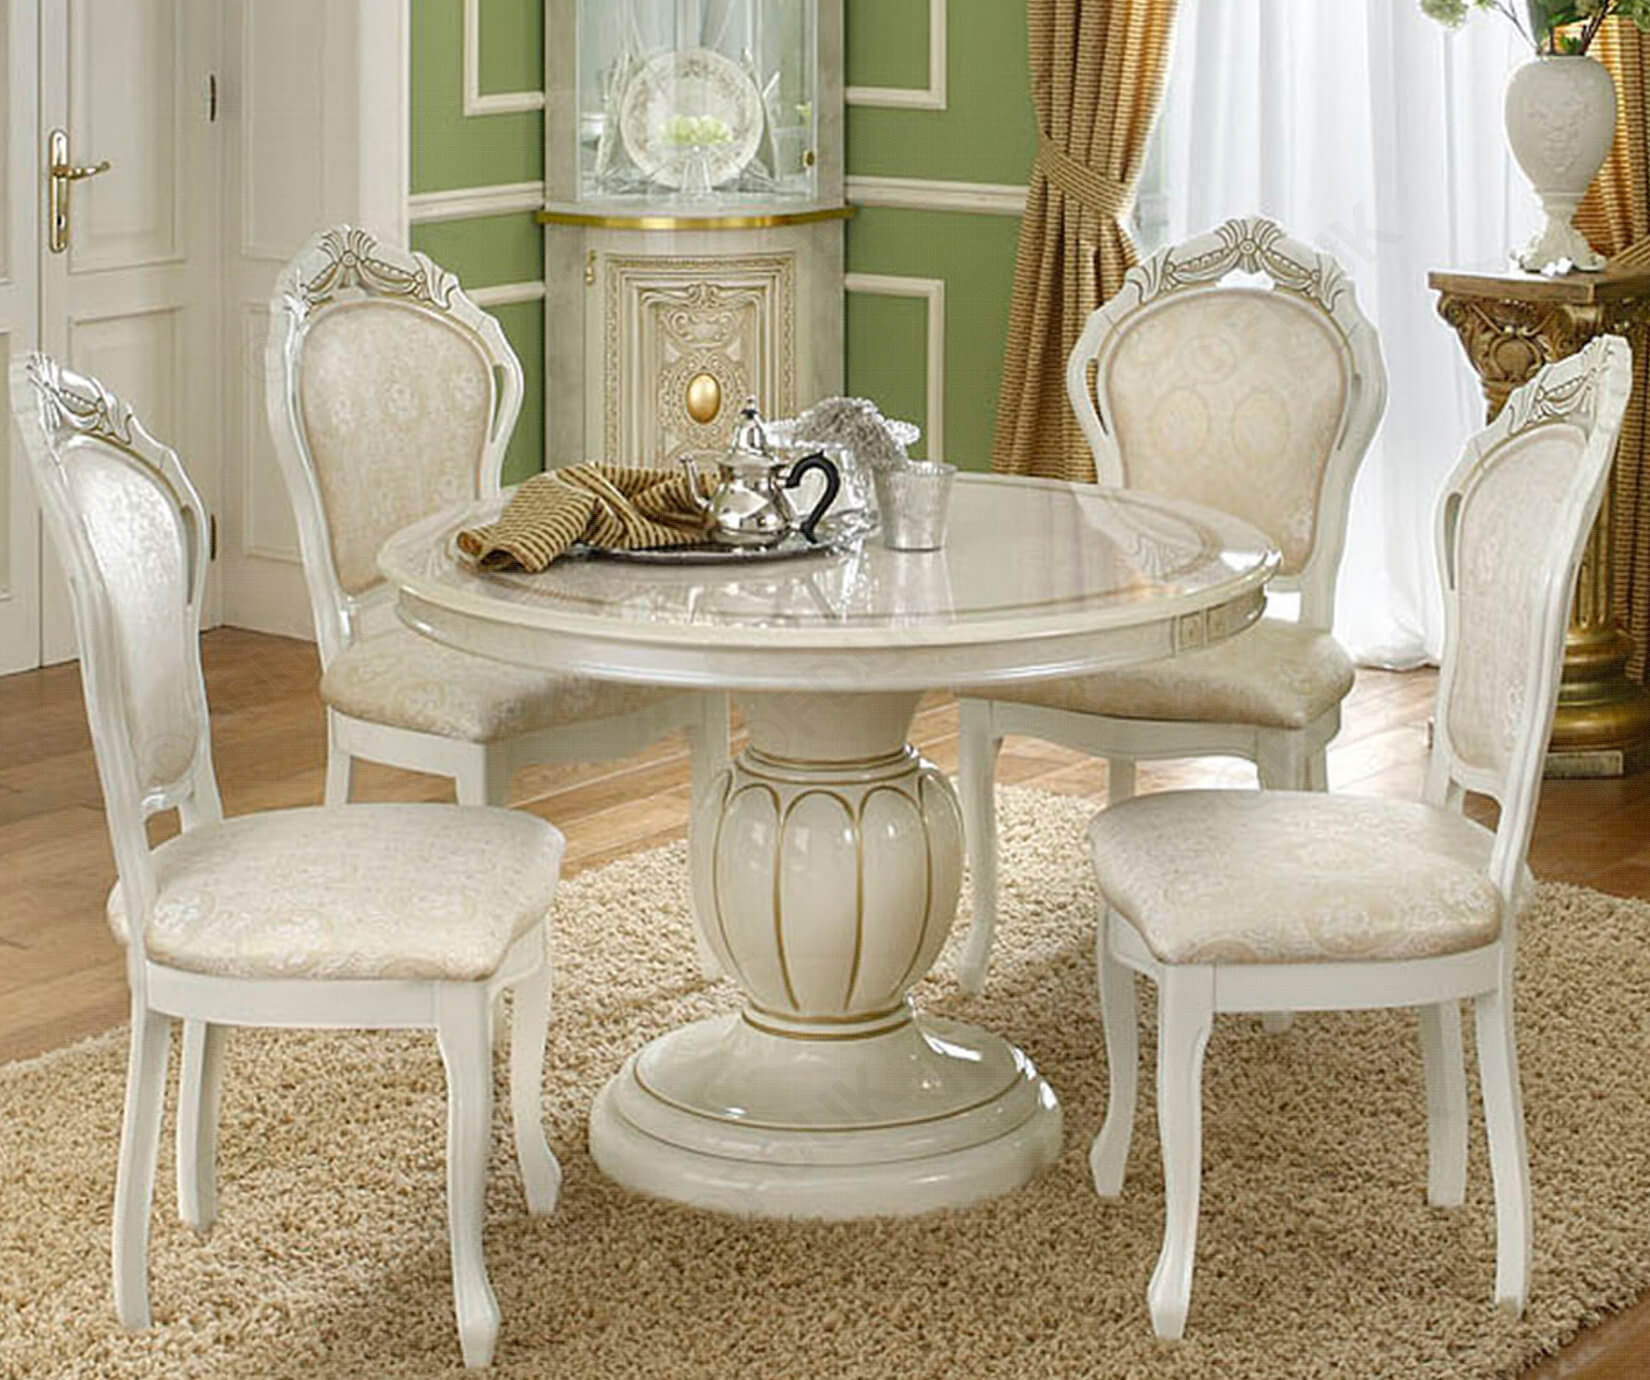 Camel Group Leonardo Ivory Round Extension Dining Set With 4 Chair within 14 Clever Initiatives of How to Make Italian Living Room Sets